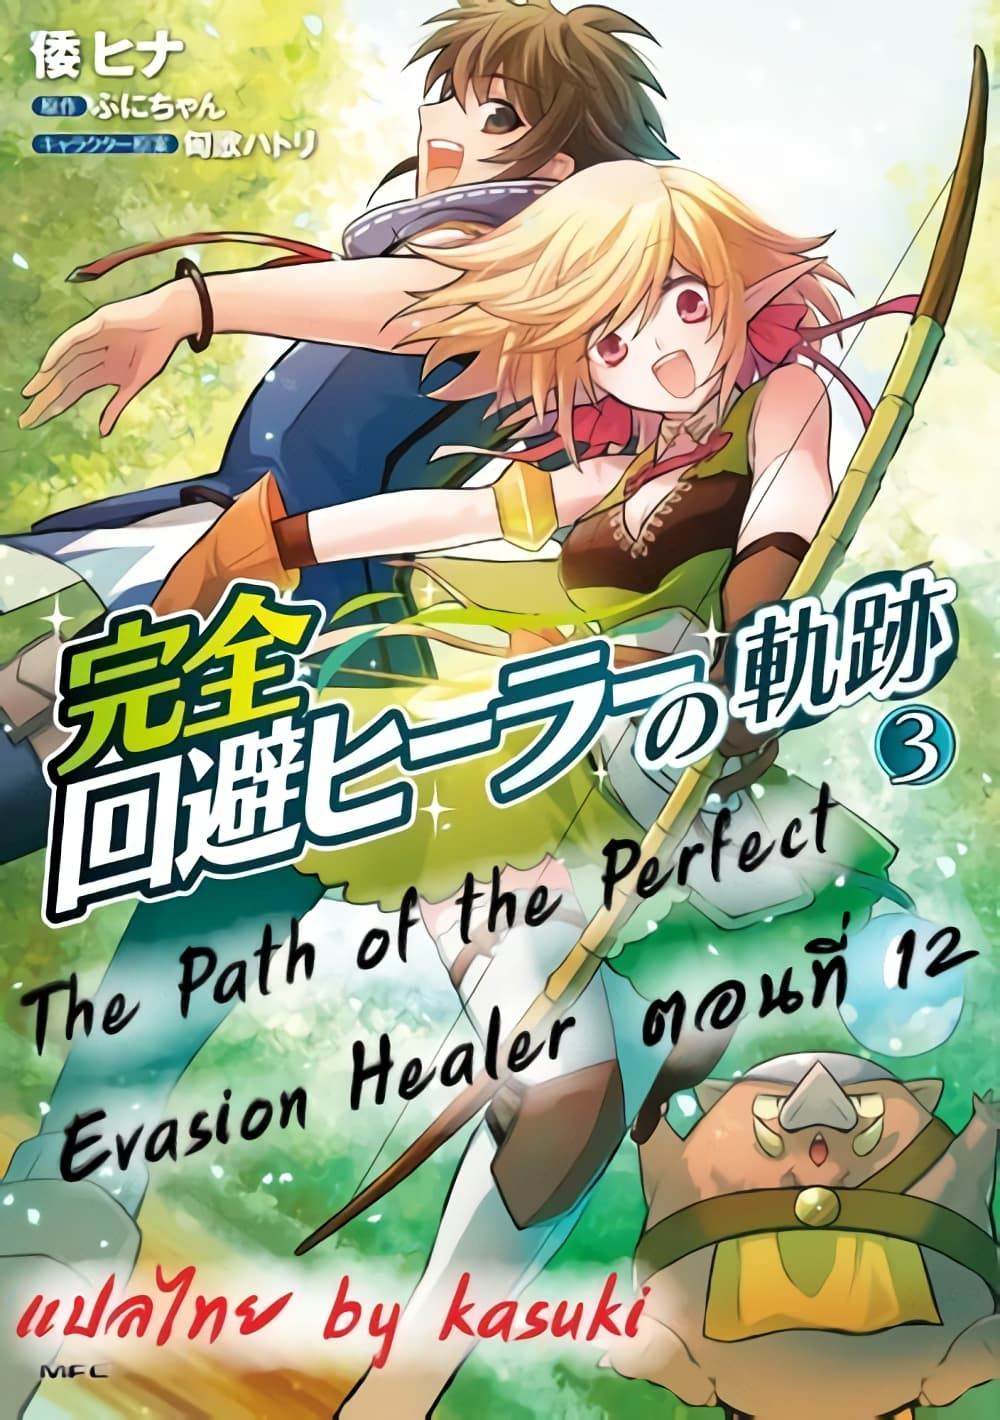 The Path of the Perfect Evasion Healer ตอนที่ 12